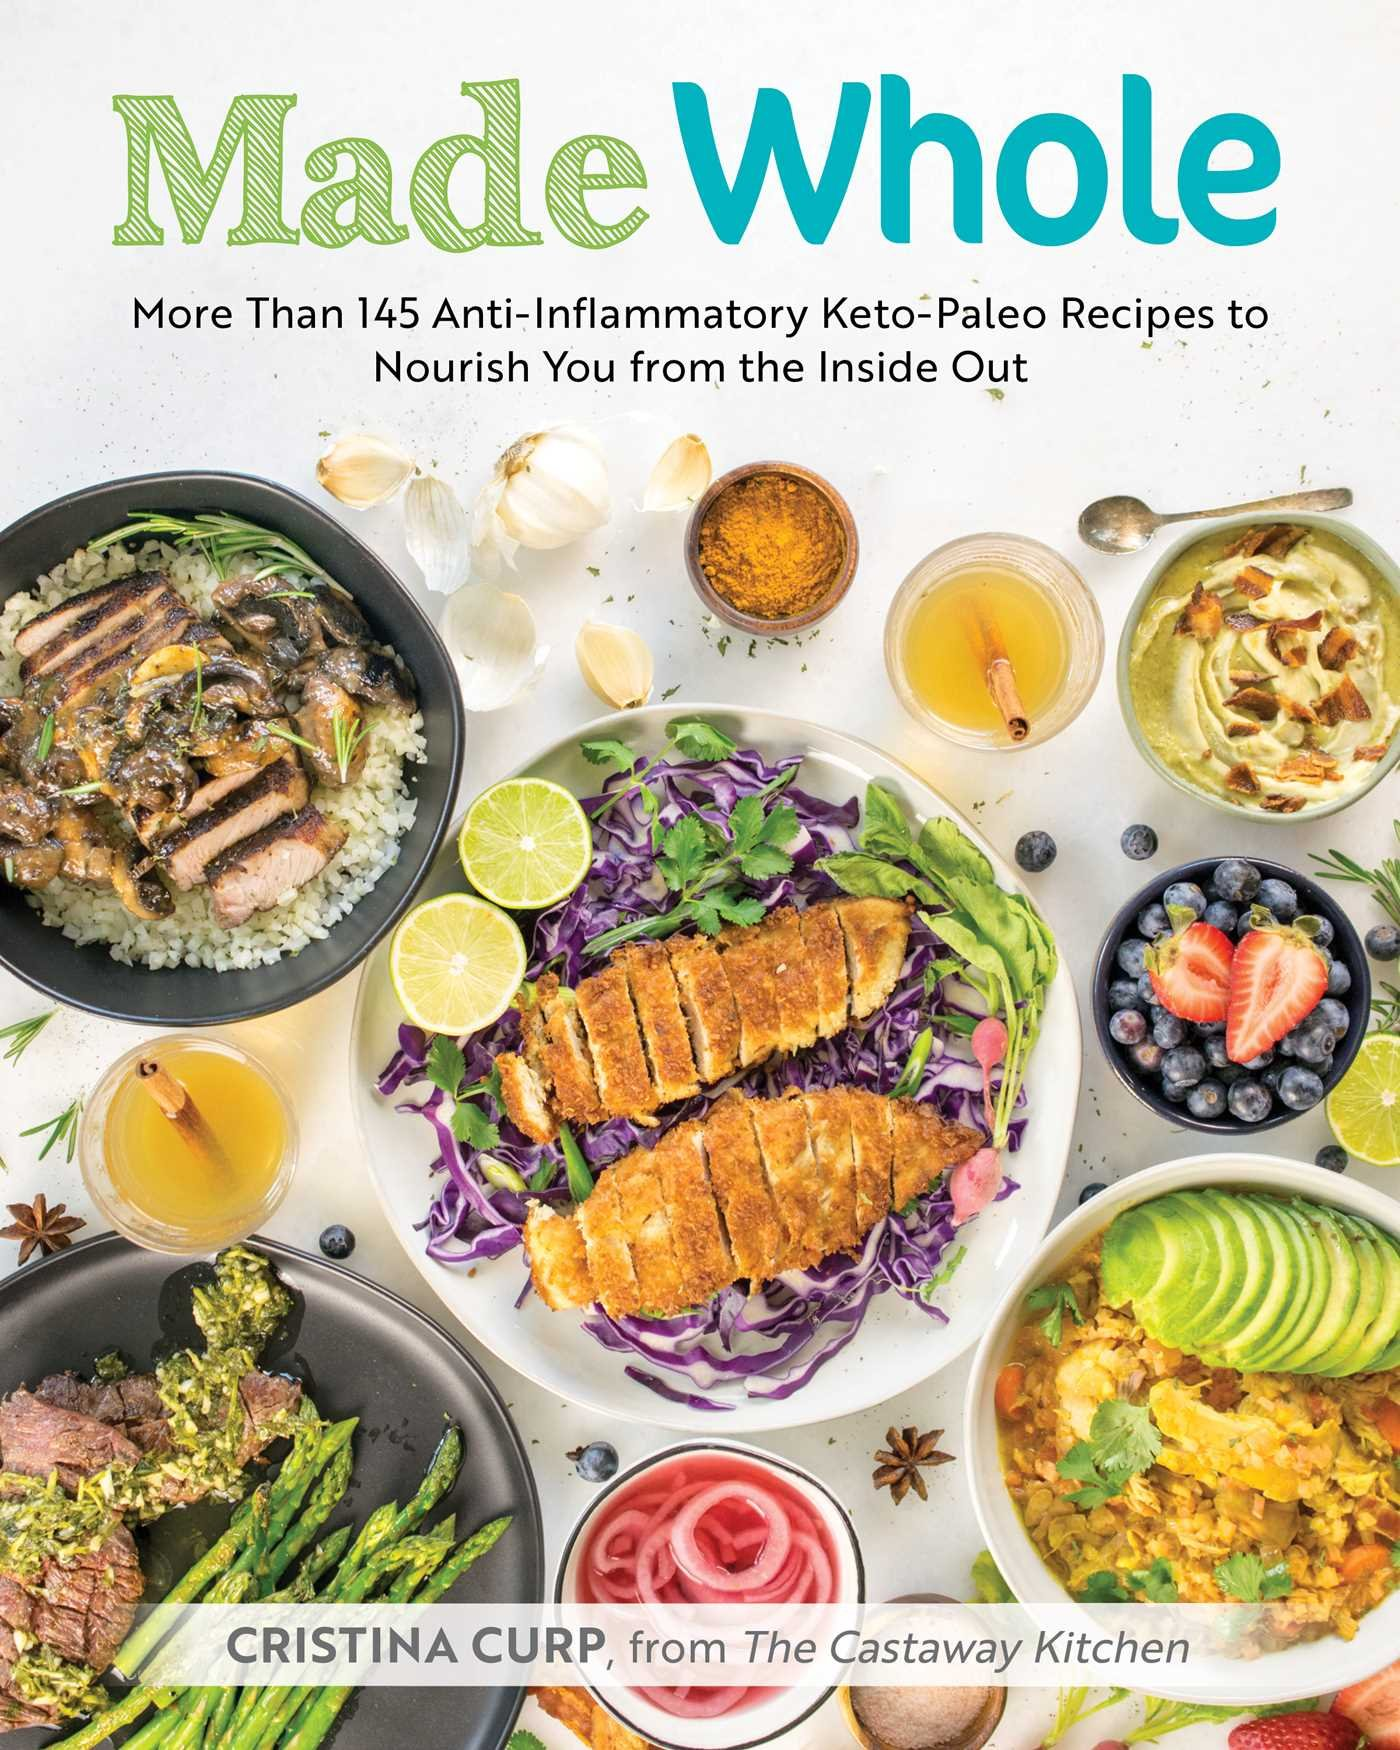 Made Whole: More Than 145 Anti-lnflammatory Keto-Paleo Recipes to Nourish You from the Inside Out by Victory Belt Publishing